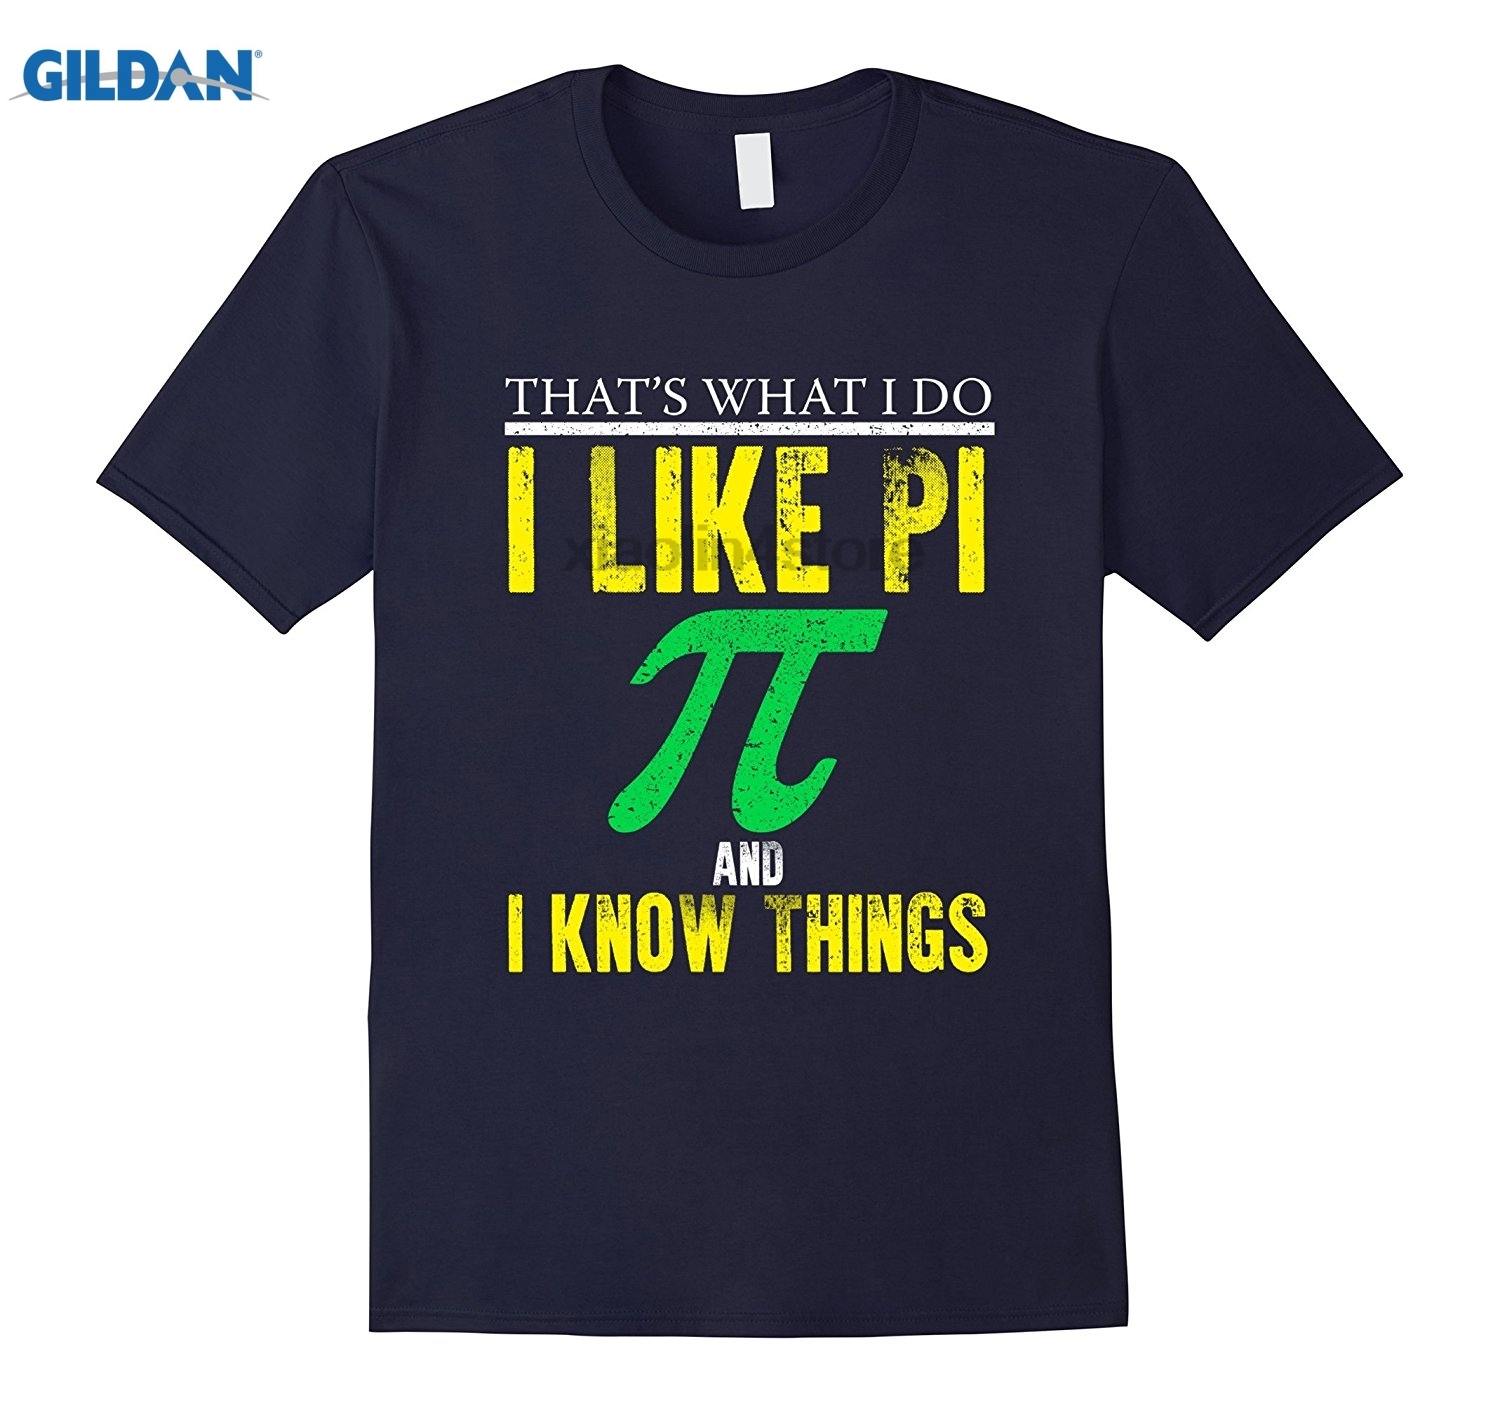 GILDAN FUNNY I LIKE PI AND I KNOW THINGS T-SHIRT Math Geek Gift Retro Summer Style Short Sleeve T-Shirt